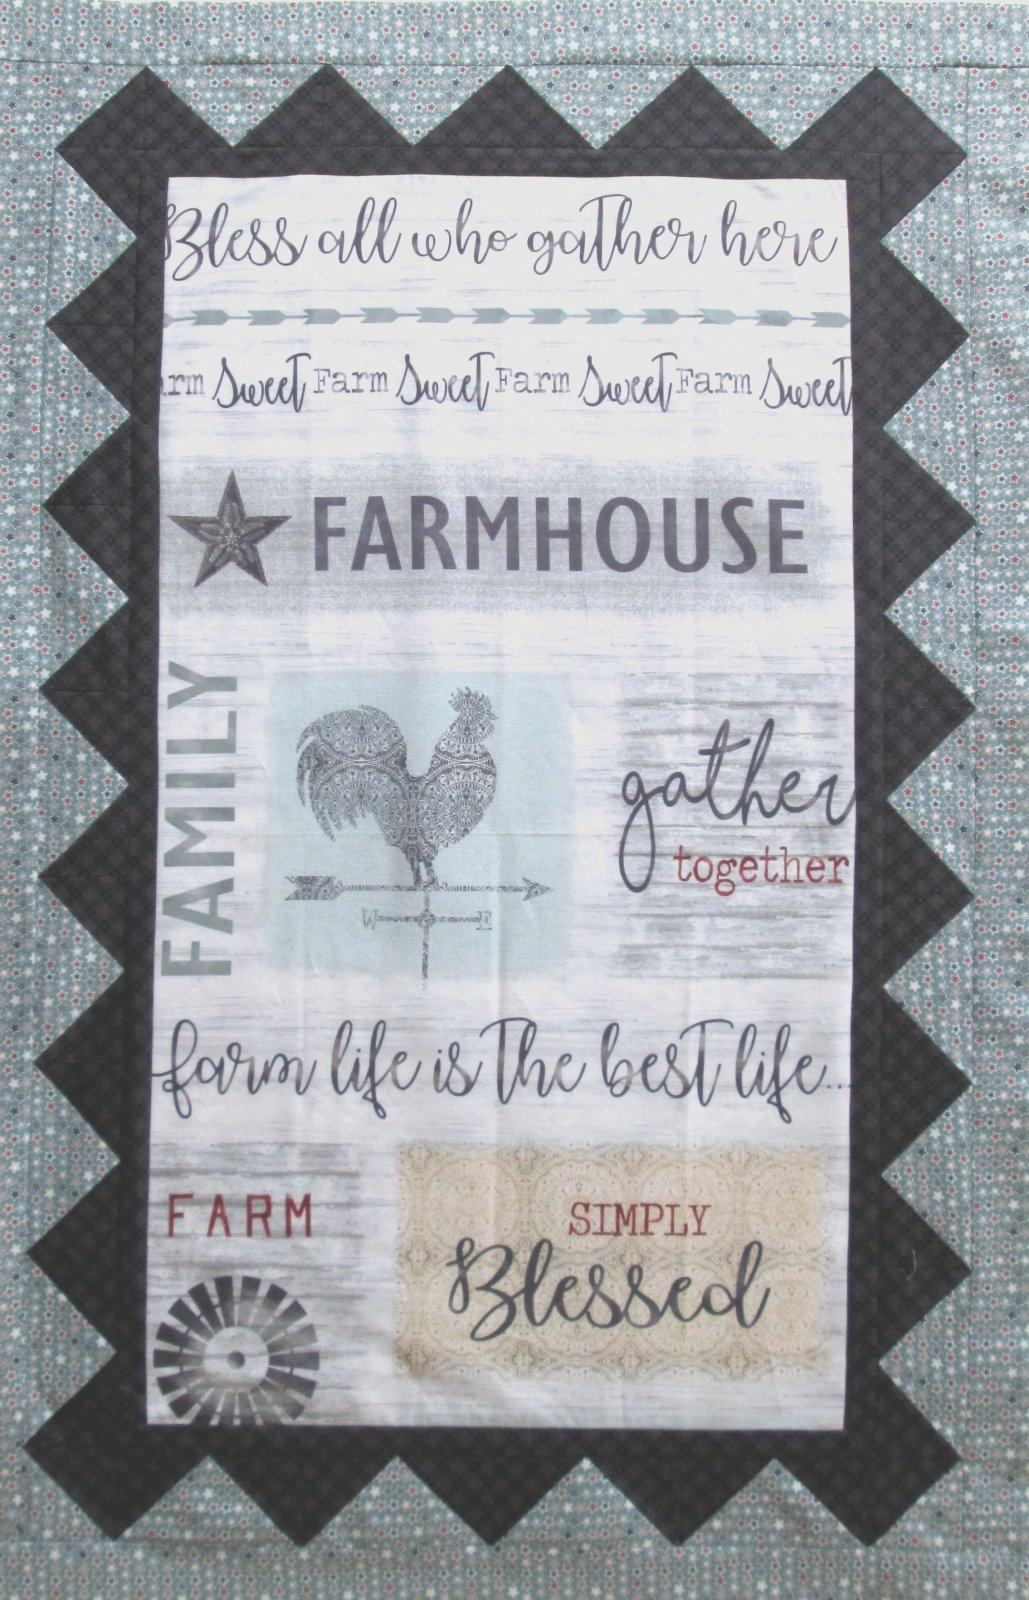 Farm Sweet Farm Wall Hanging or Quilt Kit